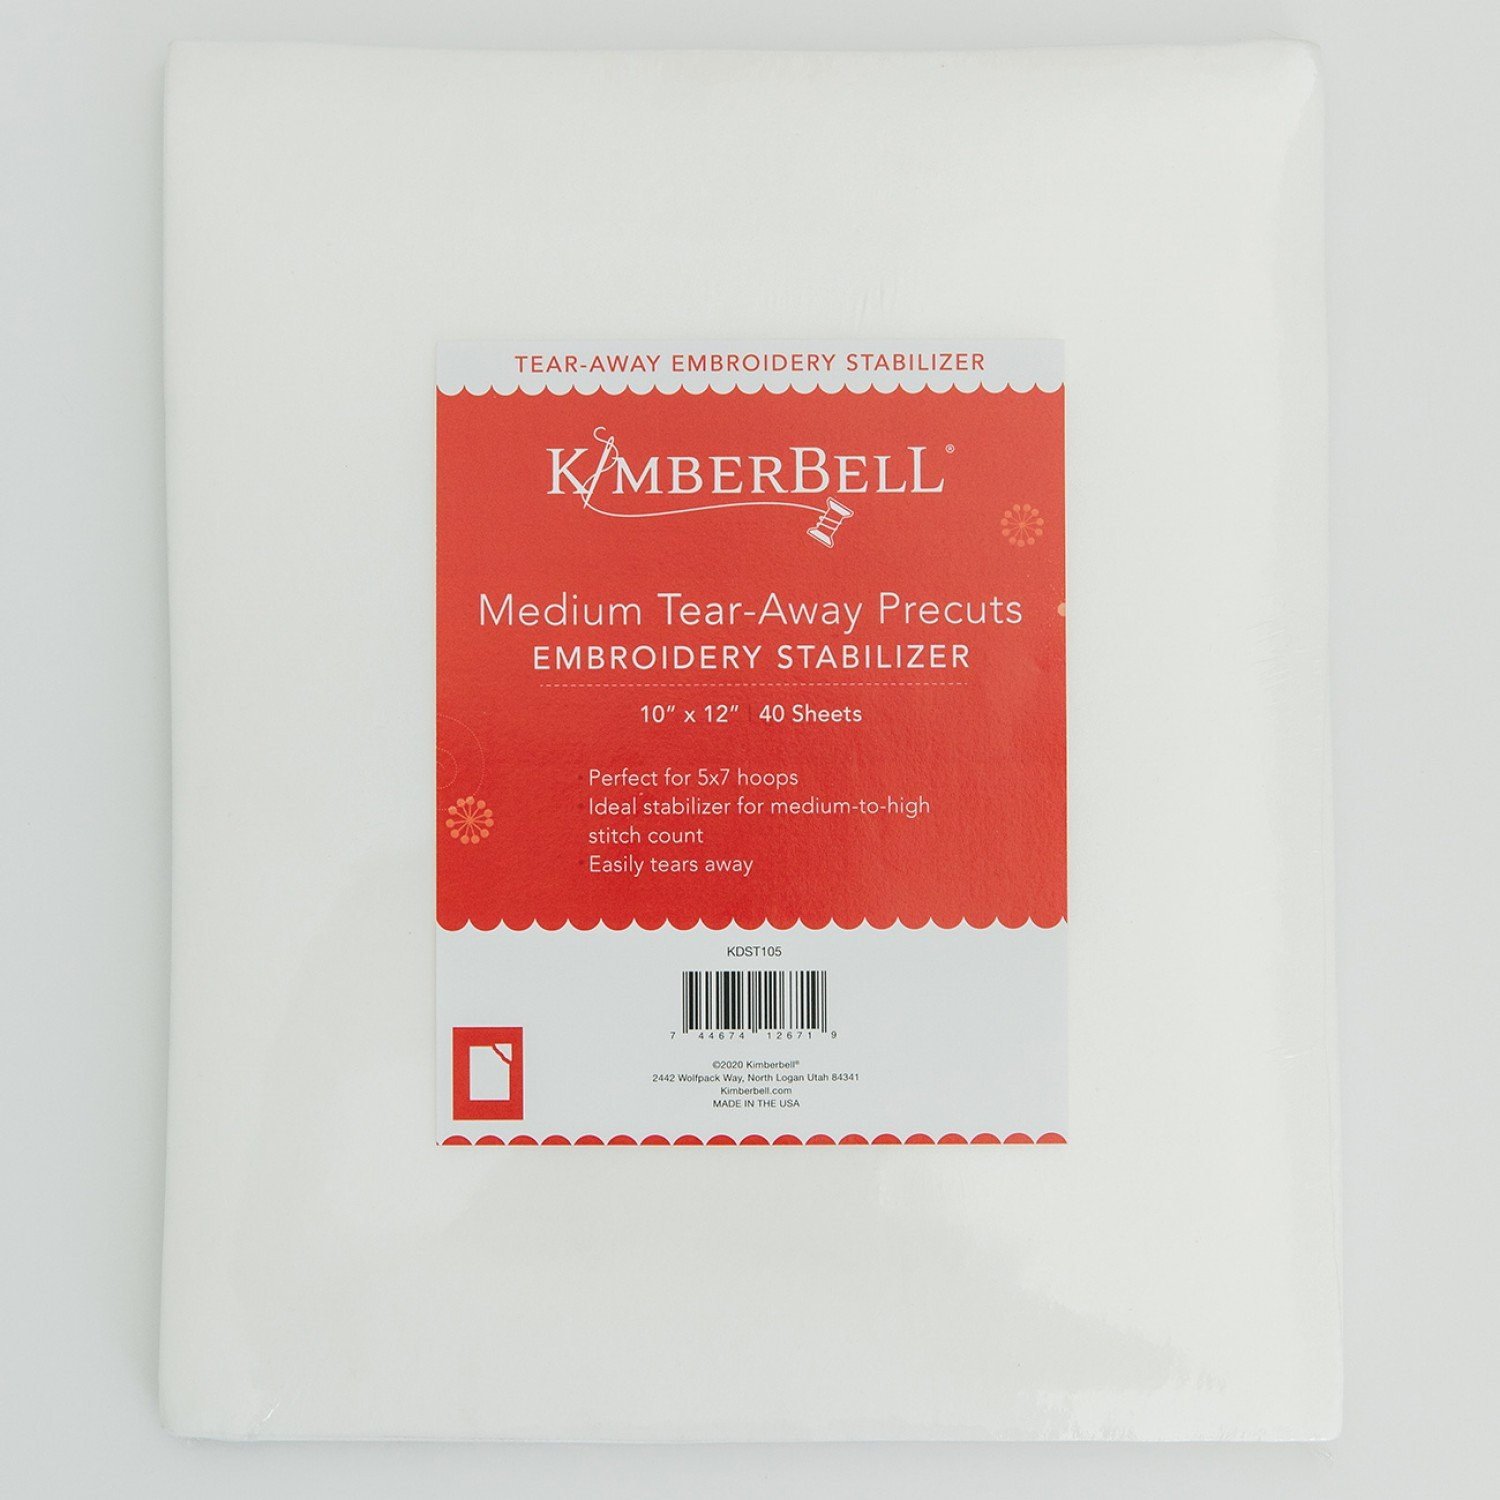 Kimberbell Medium Tear-Away Precuts Embroidery Stabilizer 10 x 12  40 sheets KDST105